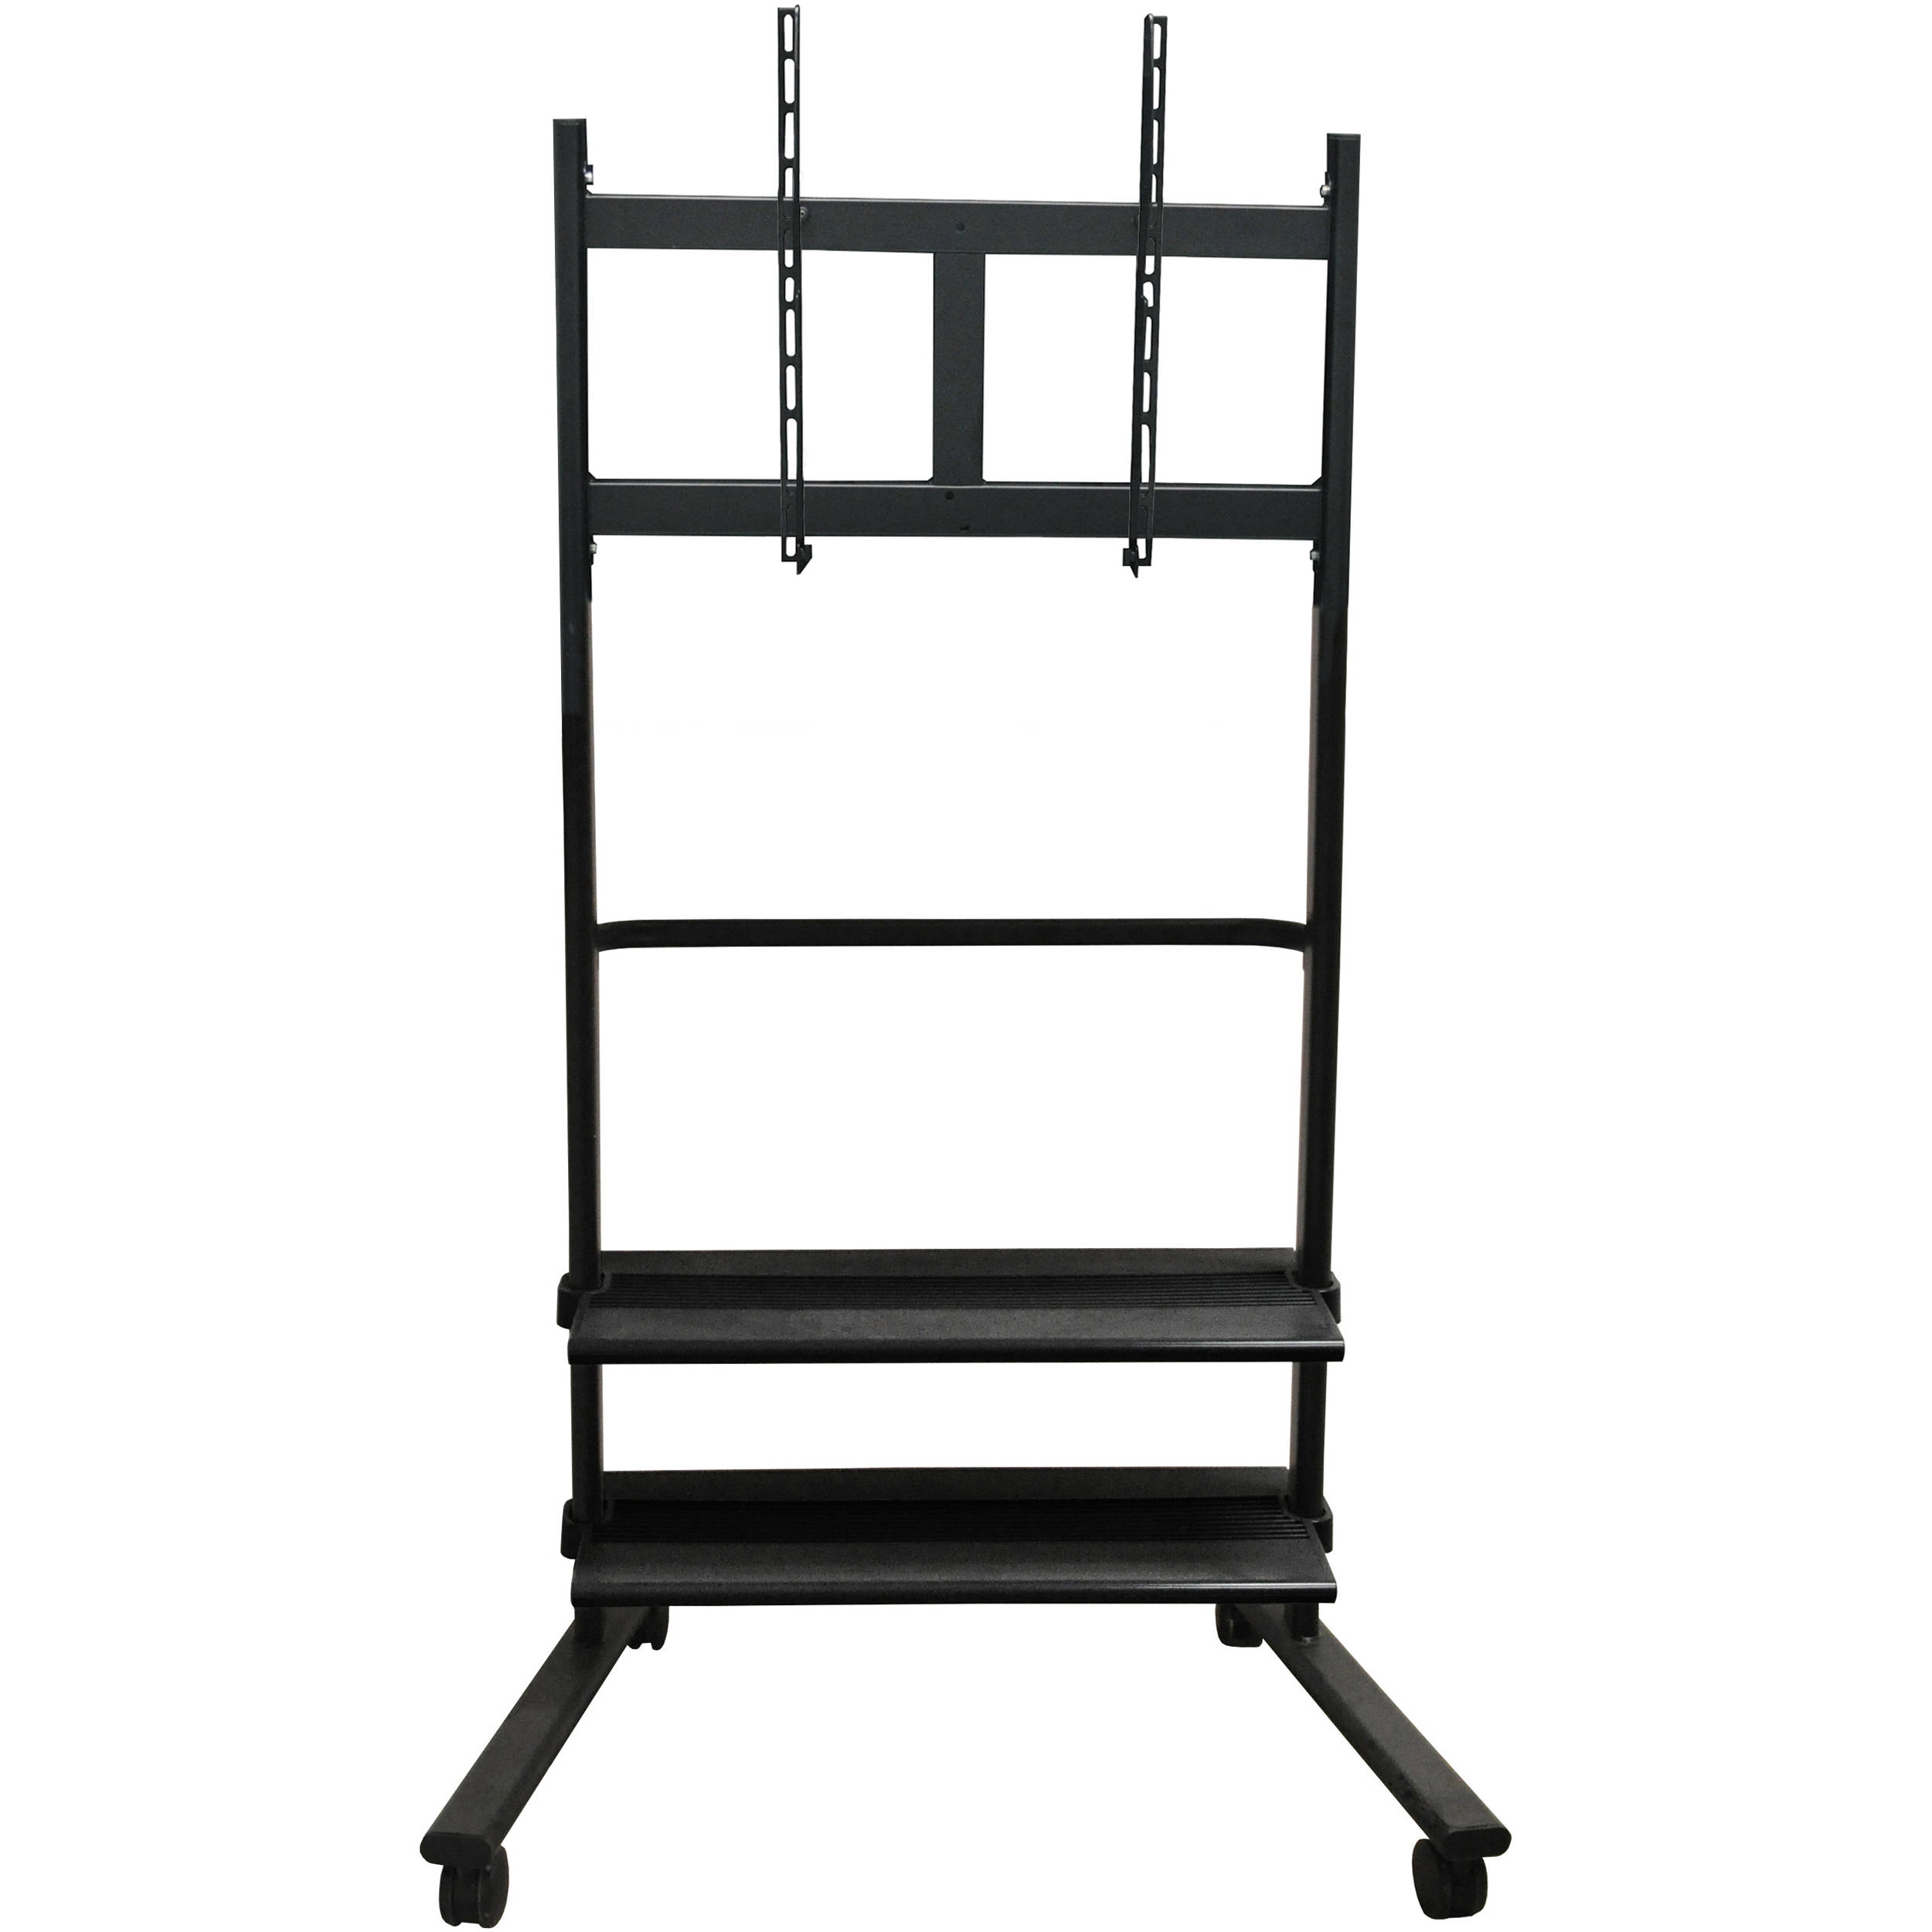 Luxor Wfp200 B Universal Lcd Tv Stand With Two Shelves Wfp200 B